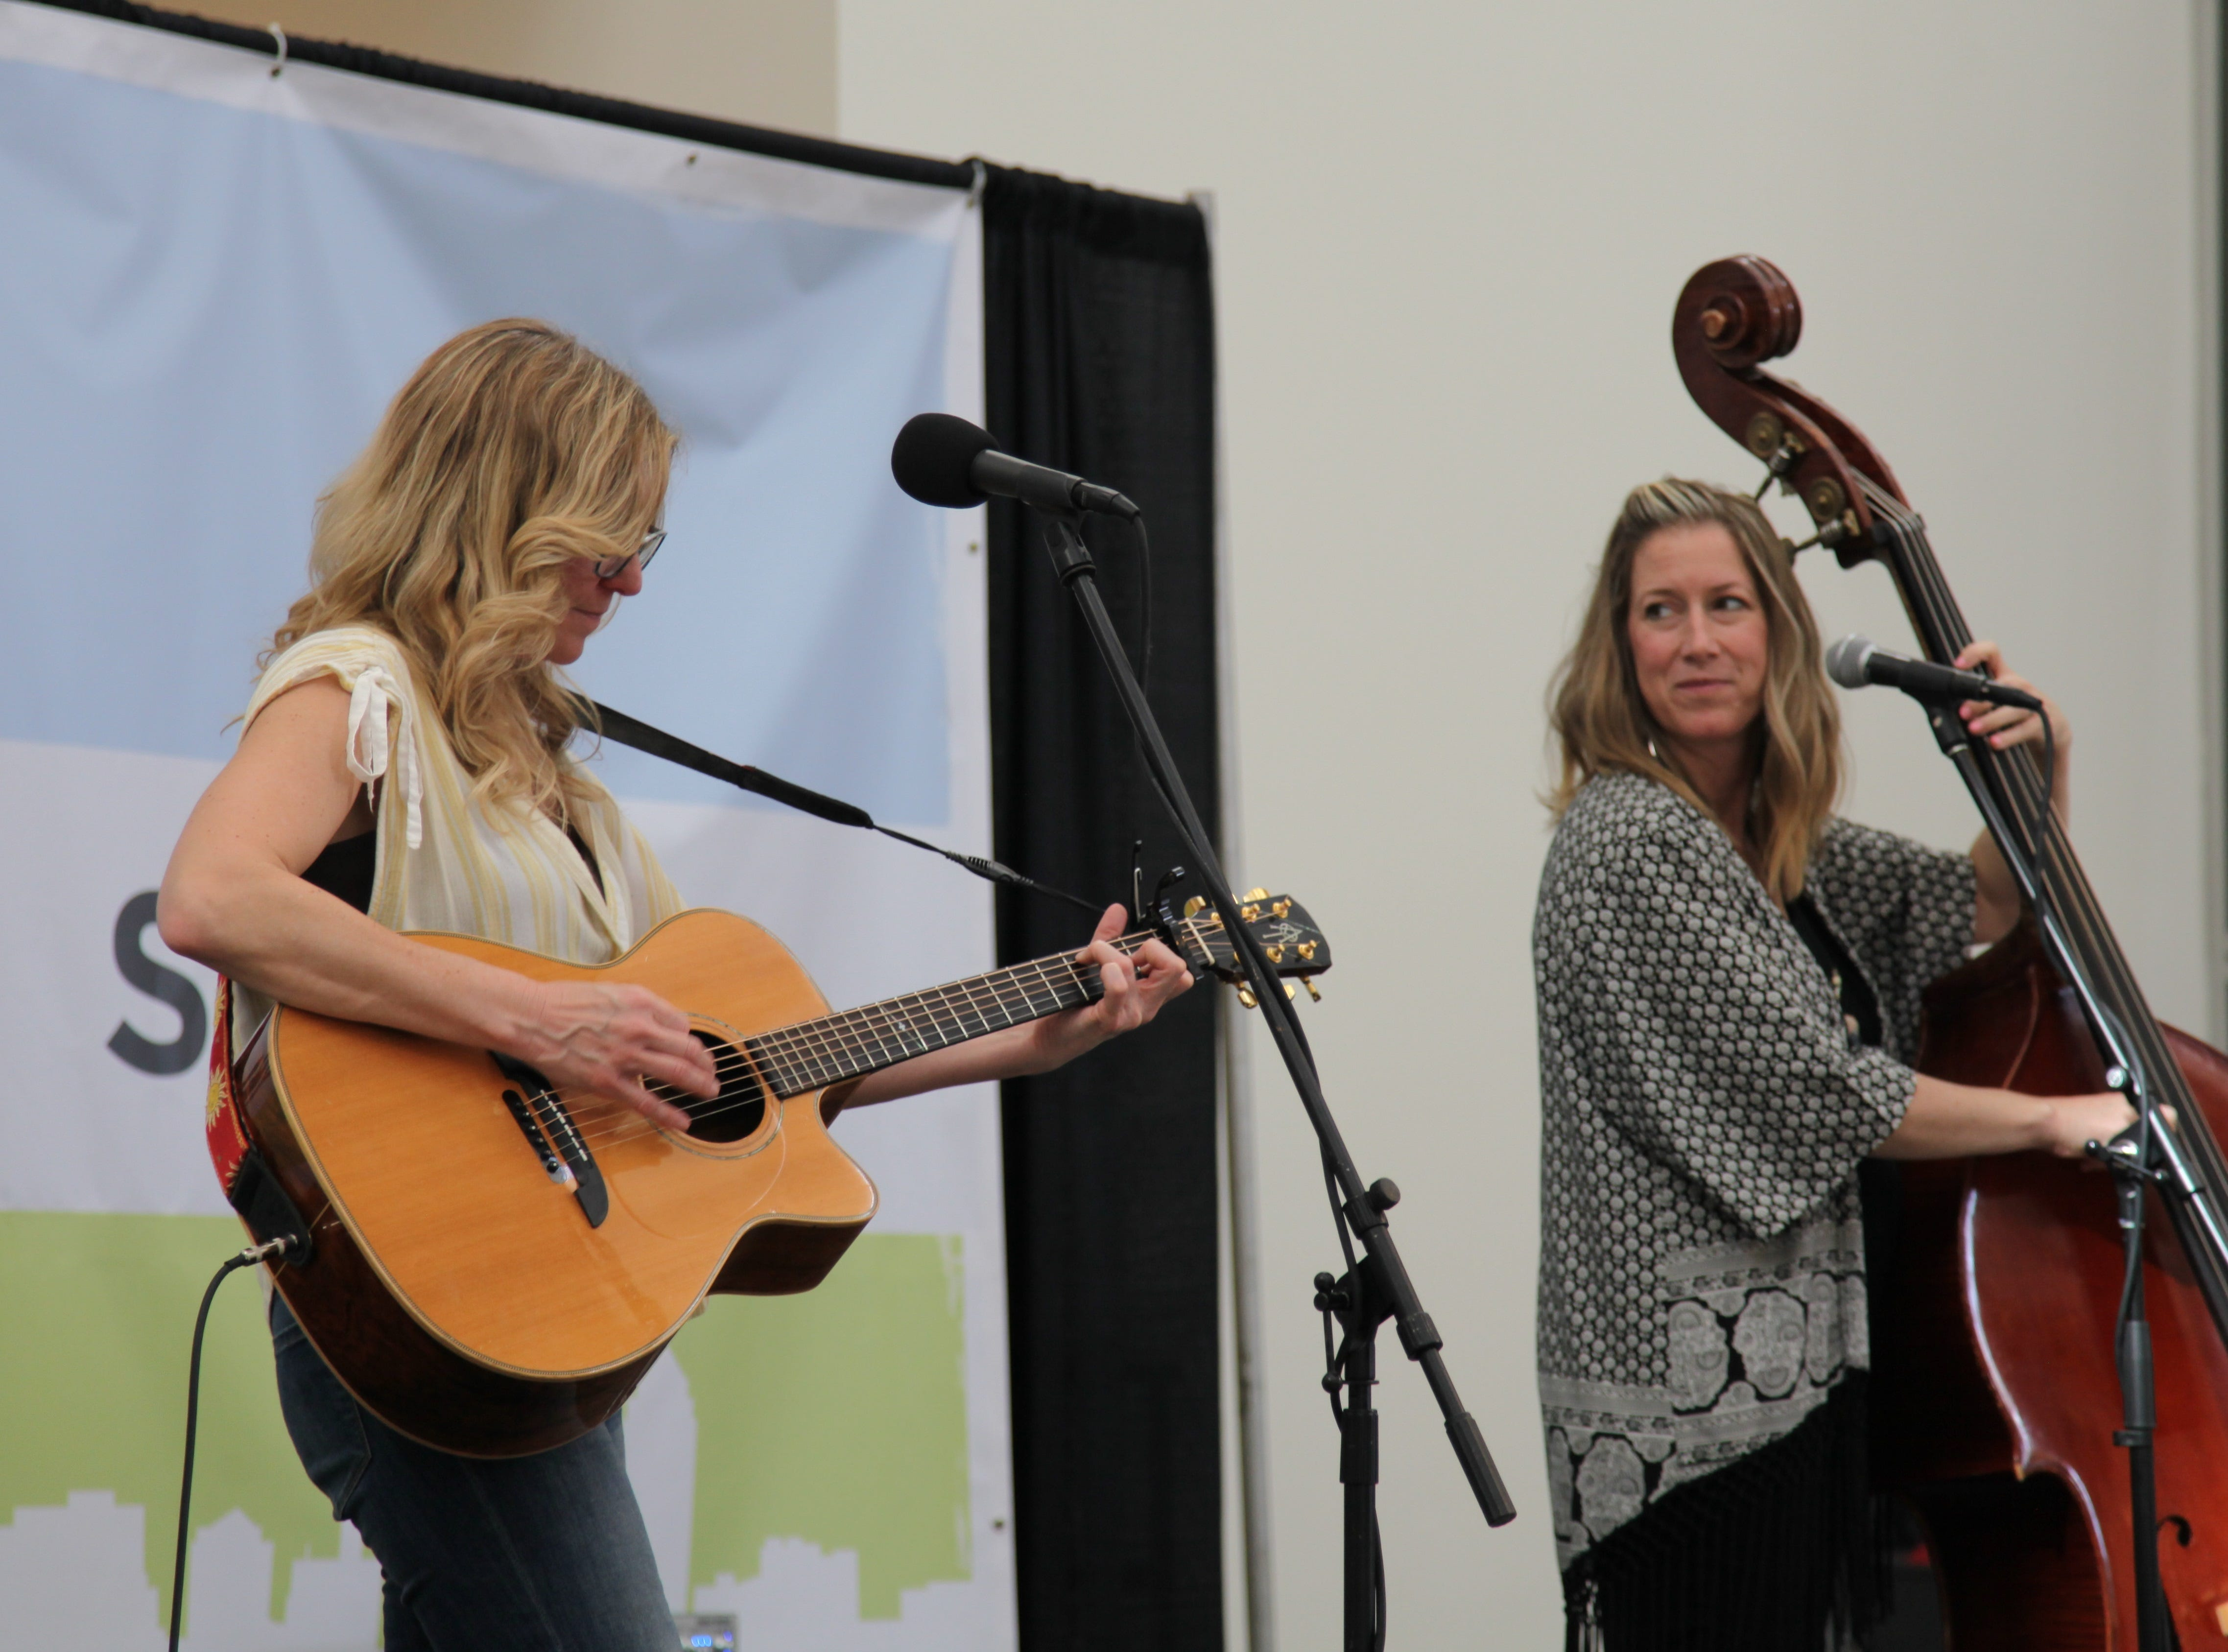 Musicians perform at the DSM Book Festival downtown on Saturday, March 30, 2019.